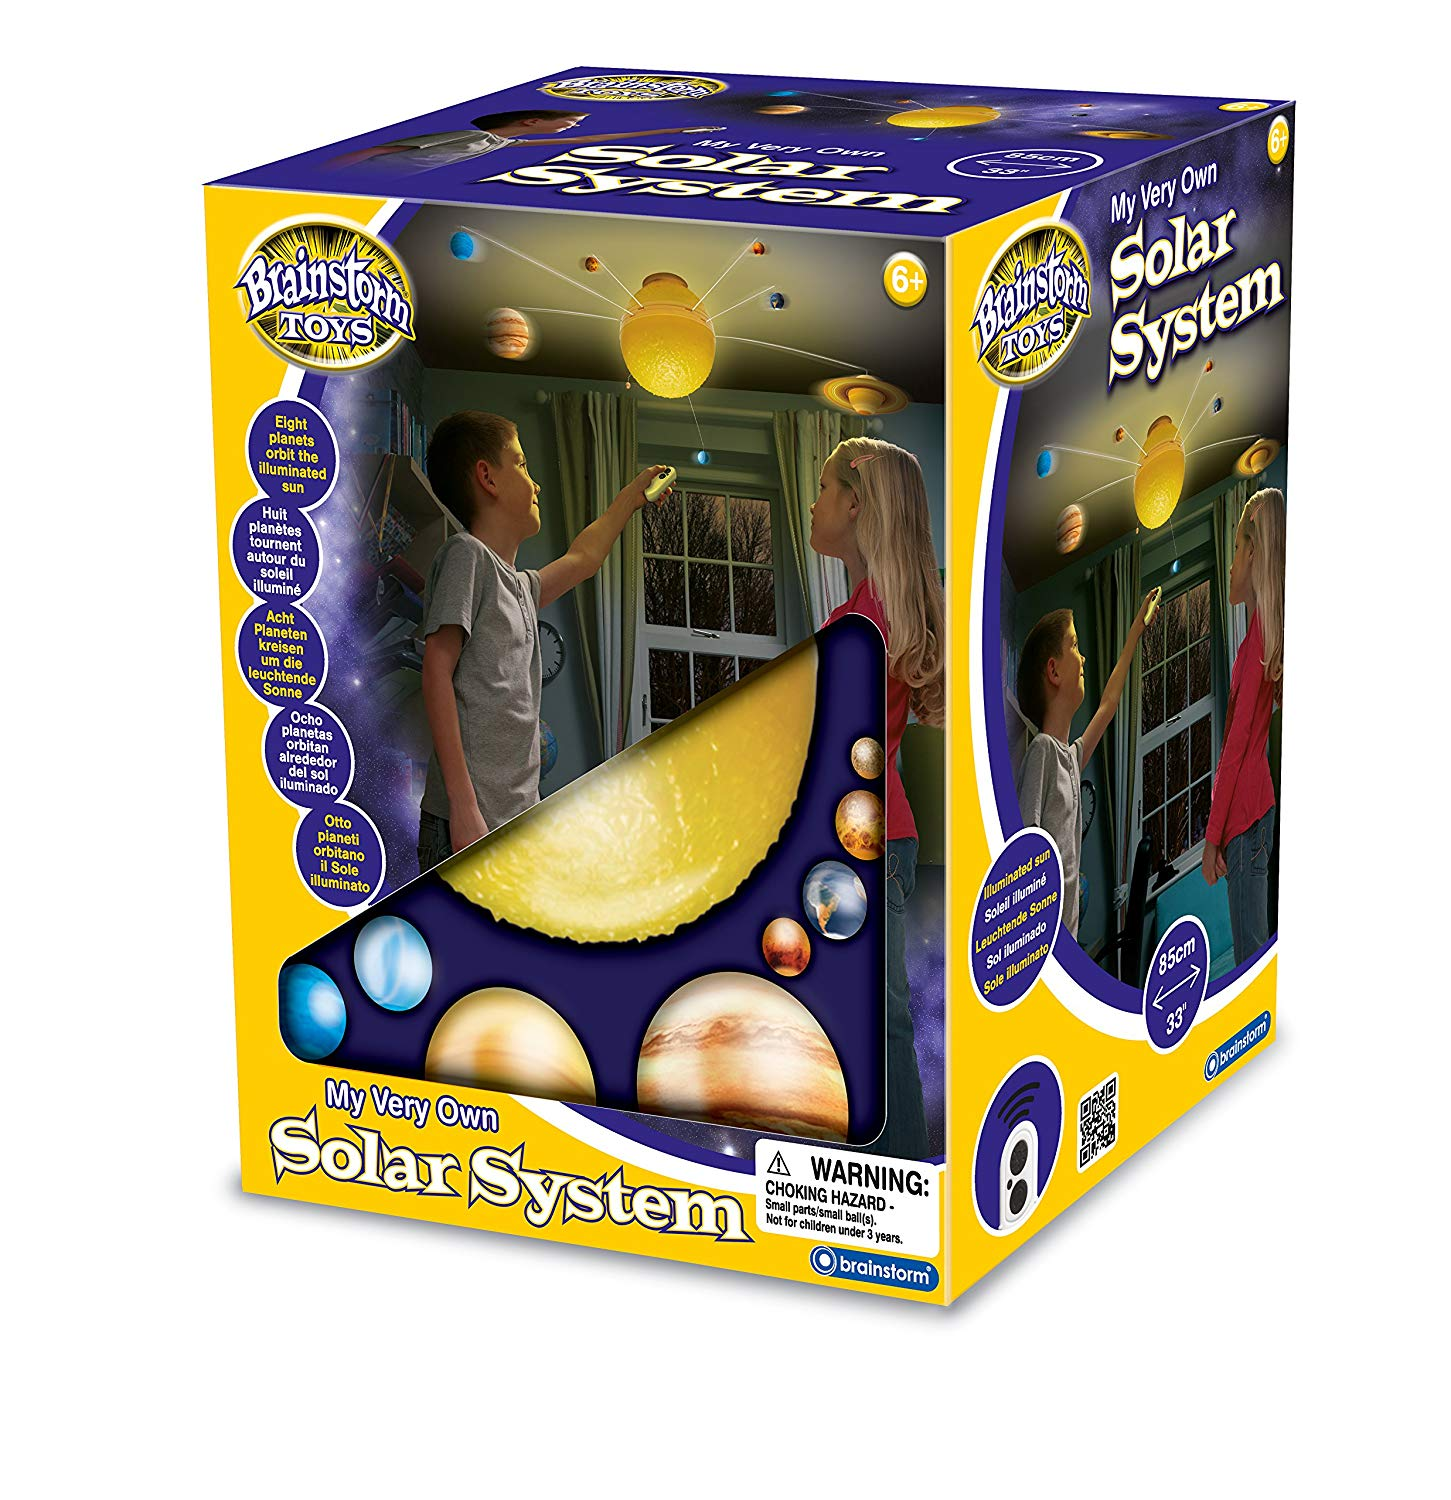 Brainstorm Toys My Very Own Solar System